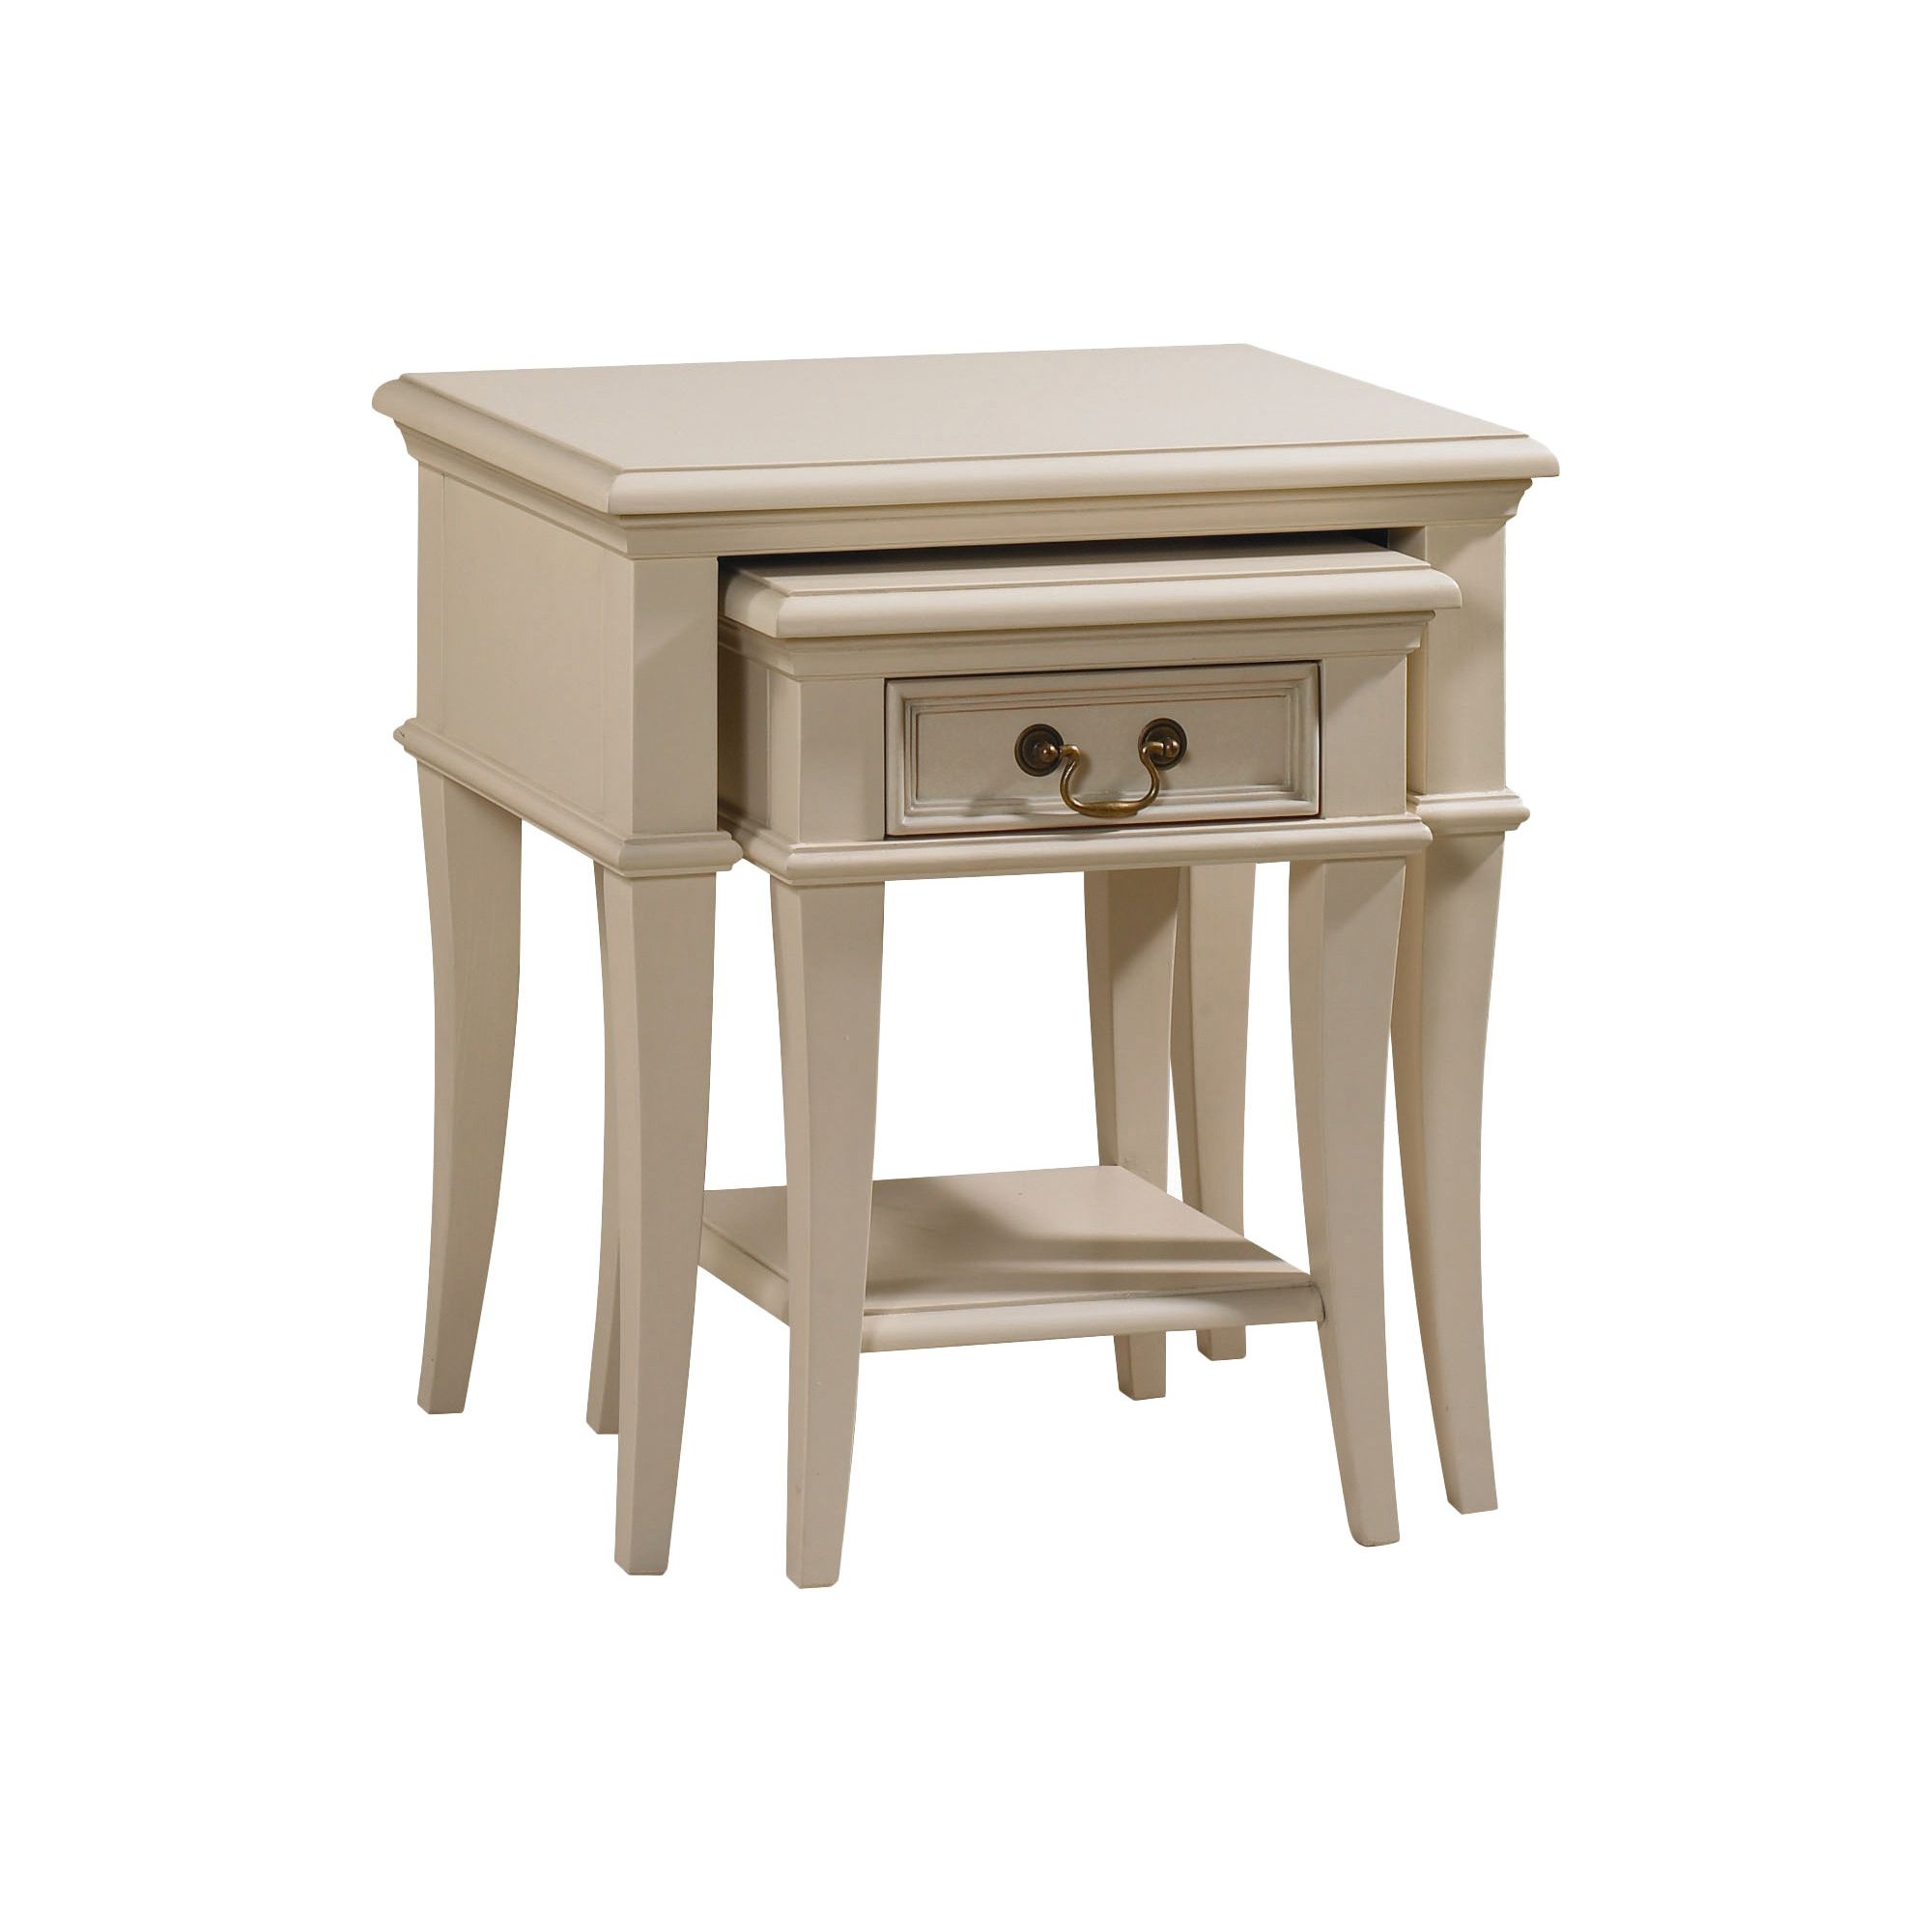 YP Furniture Country House Nest of Two Tables - Ivory at Tesco Direct